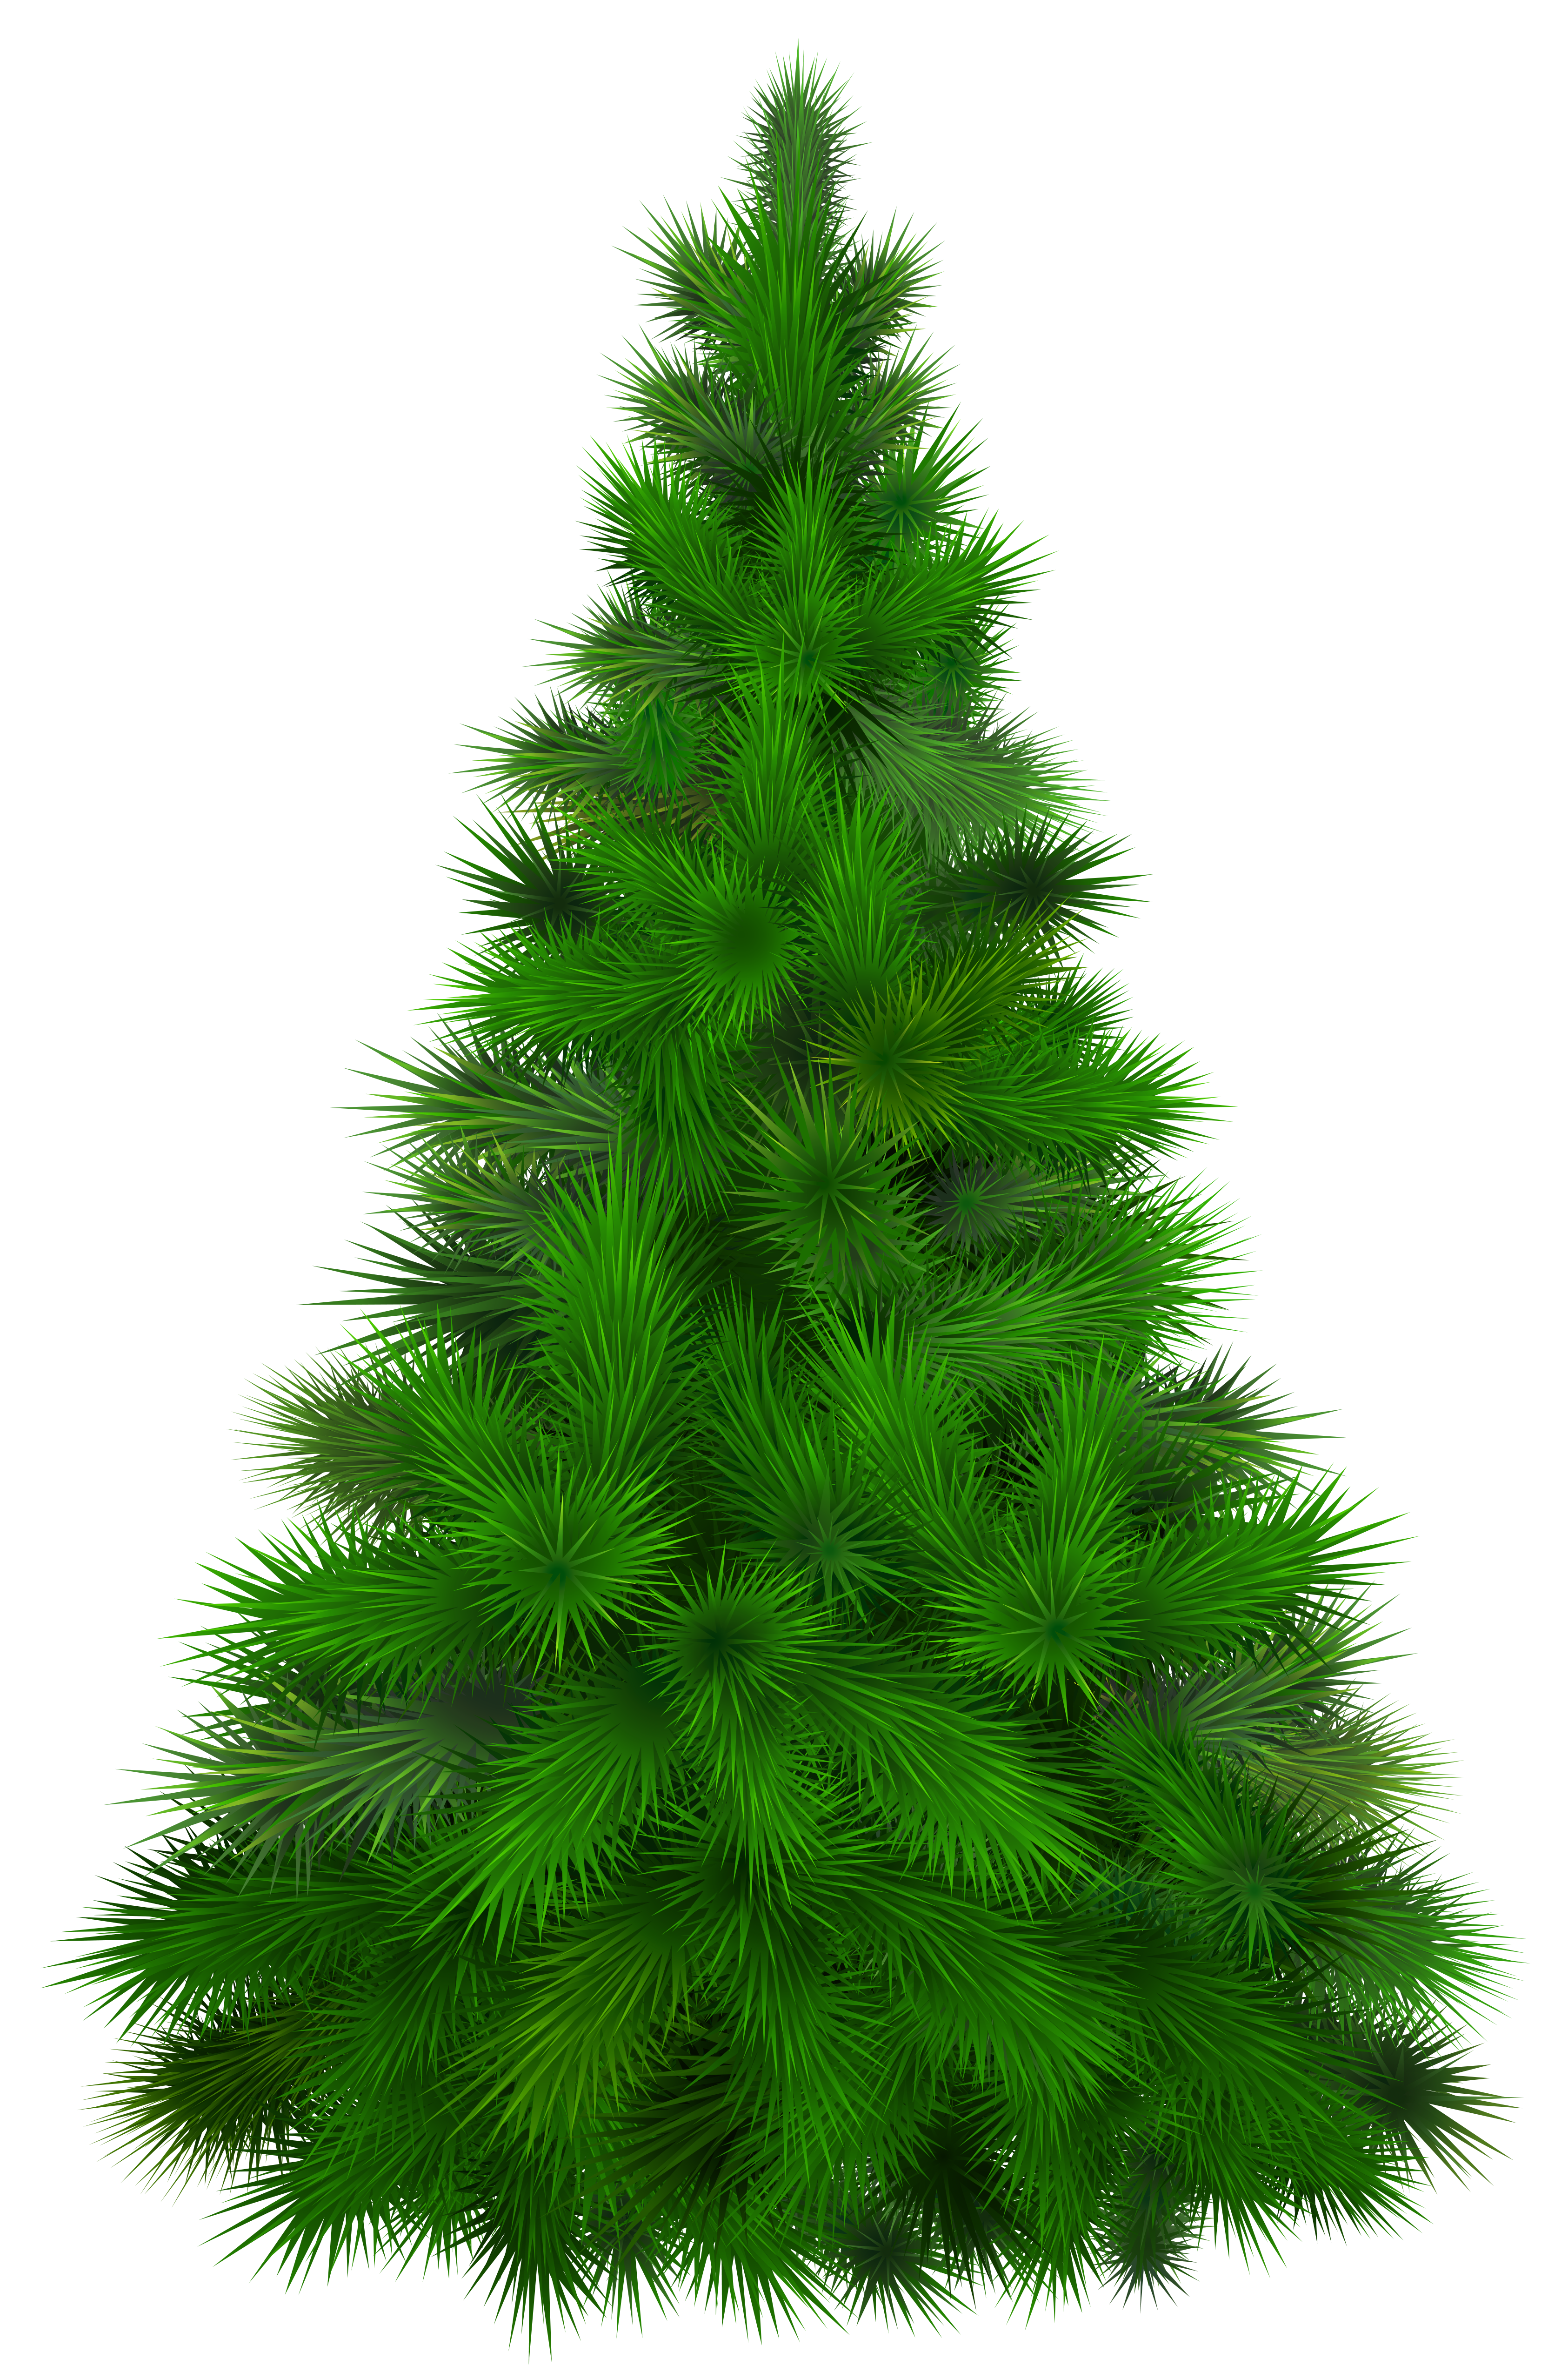 Clipart trees pine. Green tree png clip